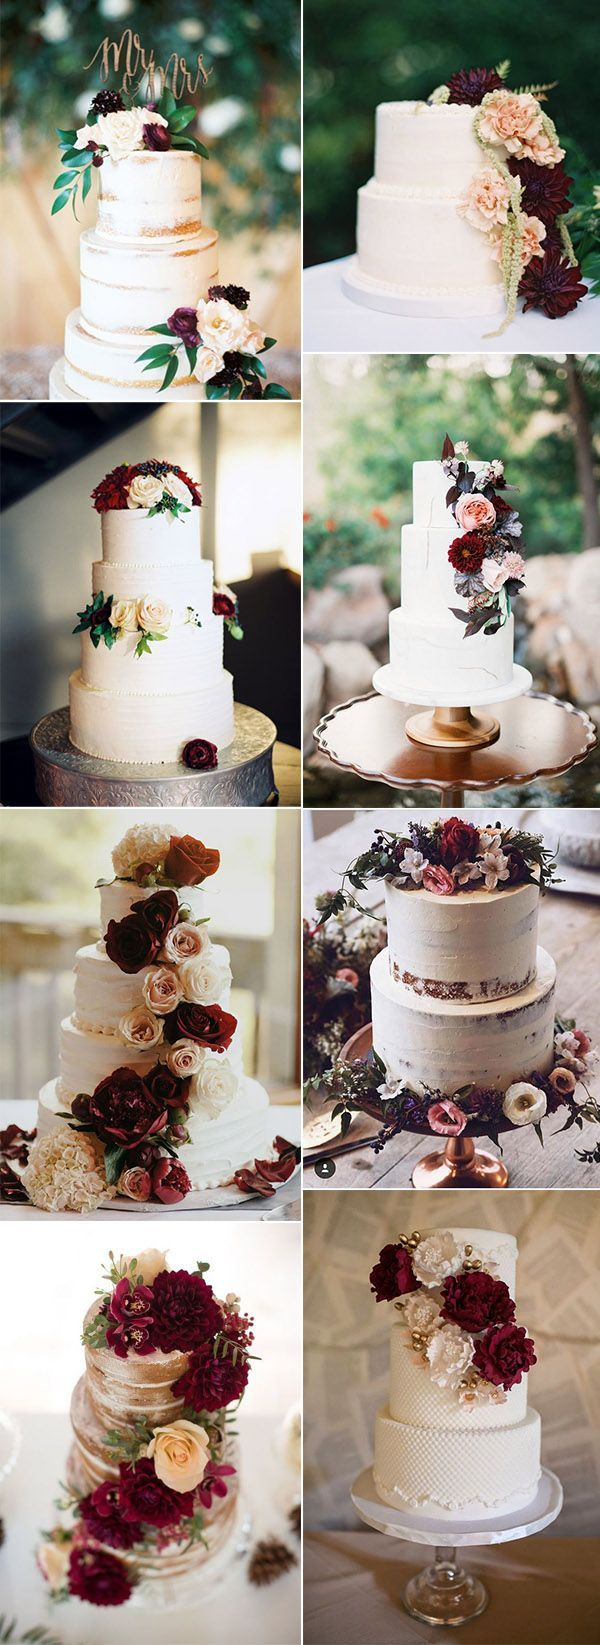 wedding cakes los angeles prices%0A     Refined Burgundy and Marsala Wedding Ideas for Fall Brides